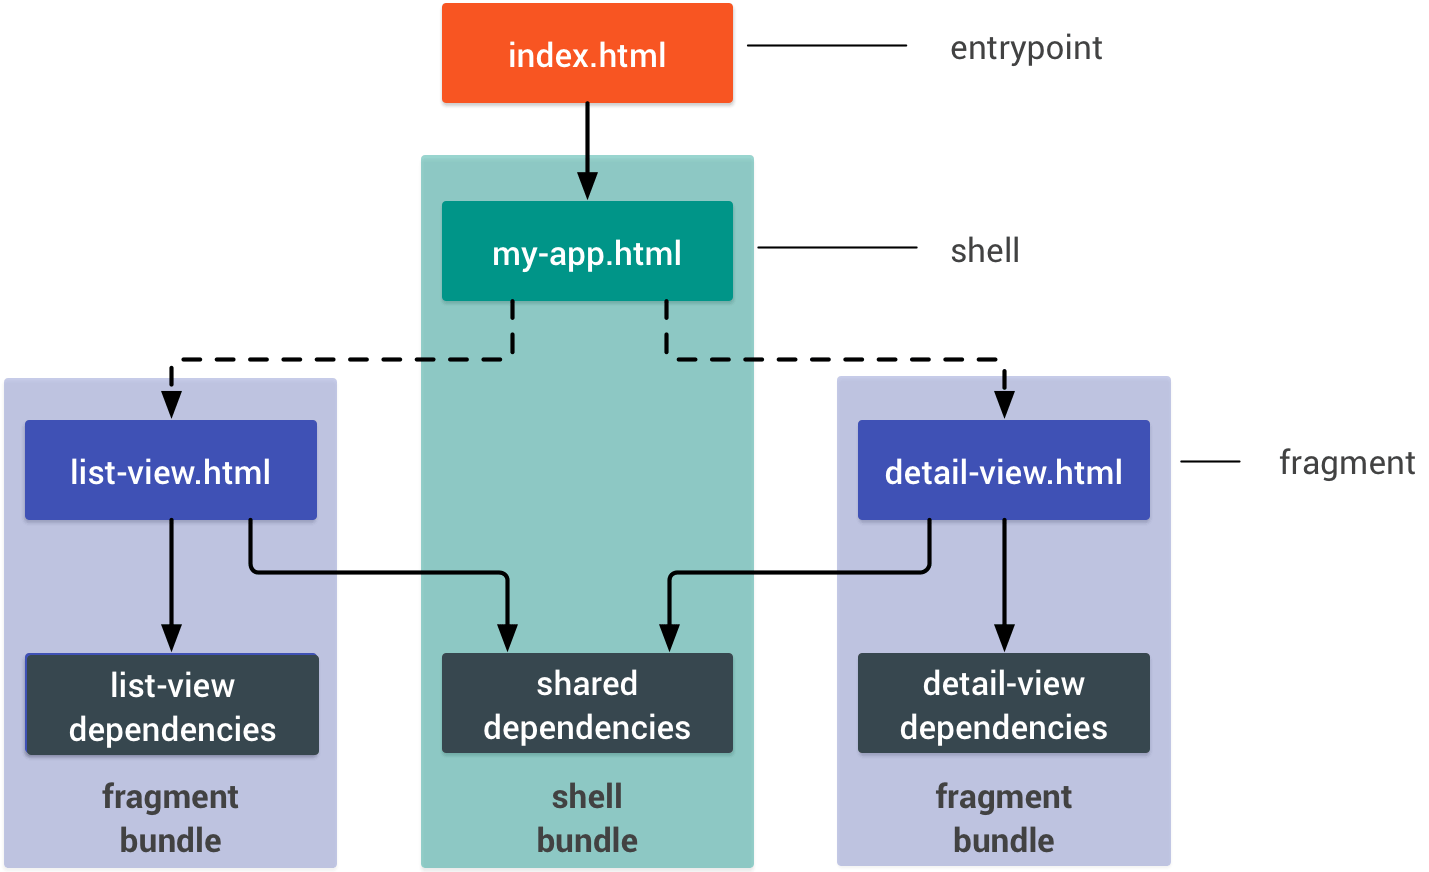 hight resolution of diagram of the same app as before where there are 3 bundled dependencies